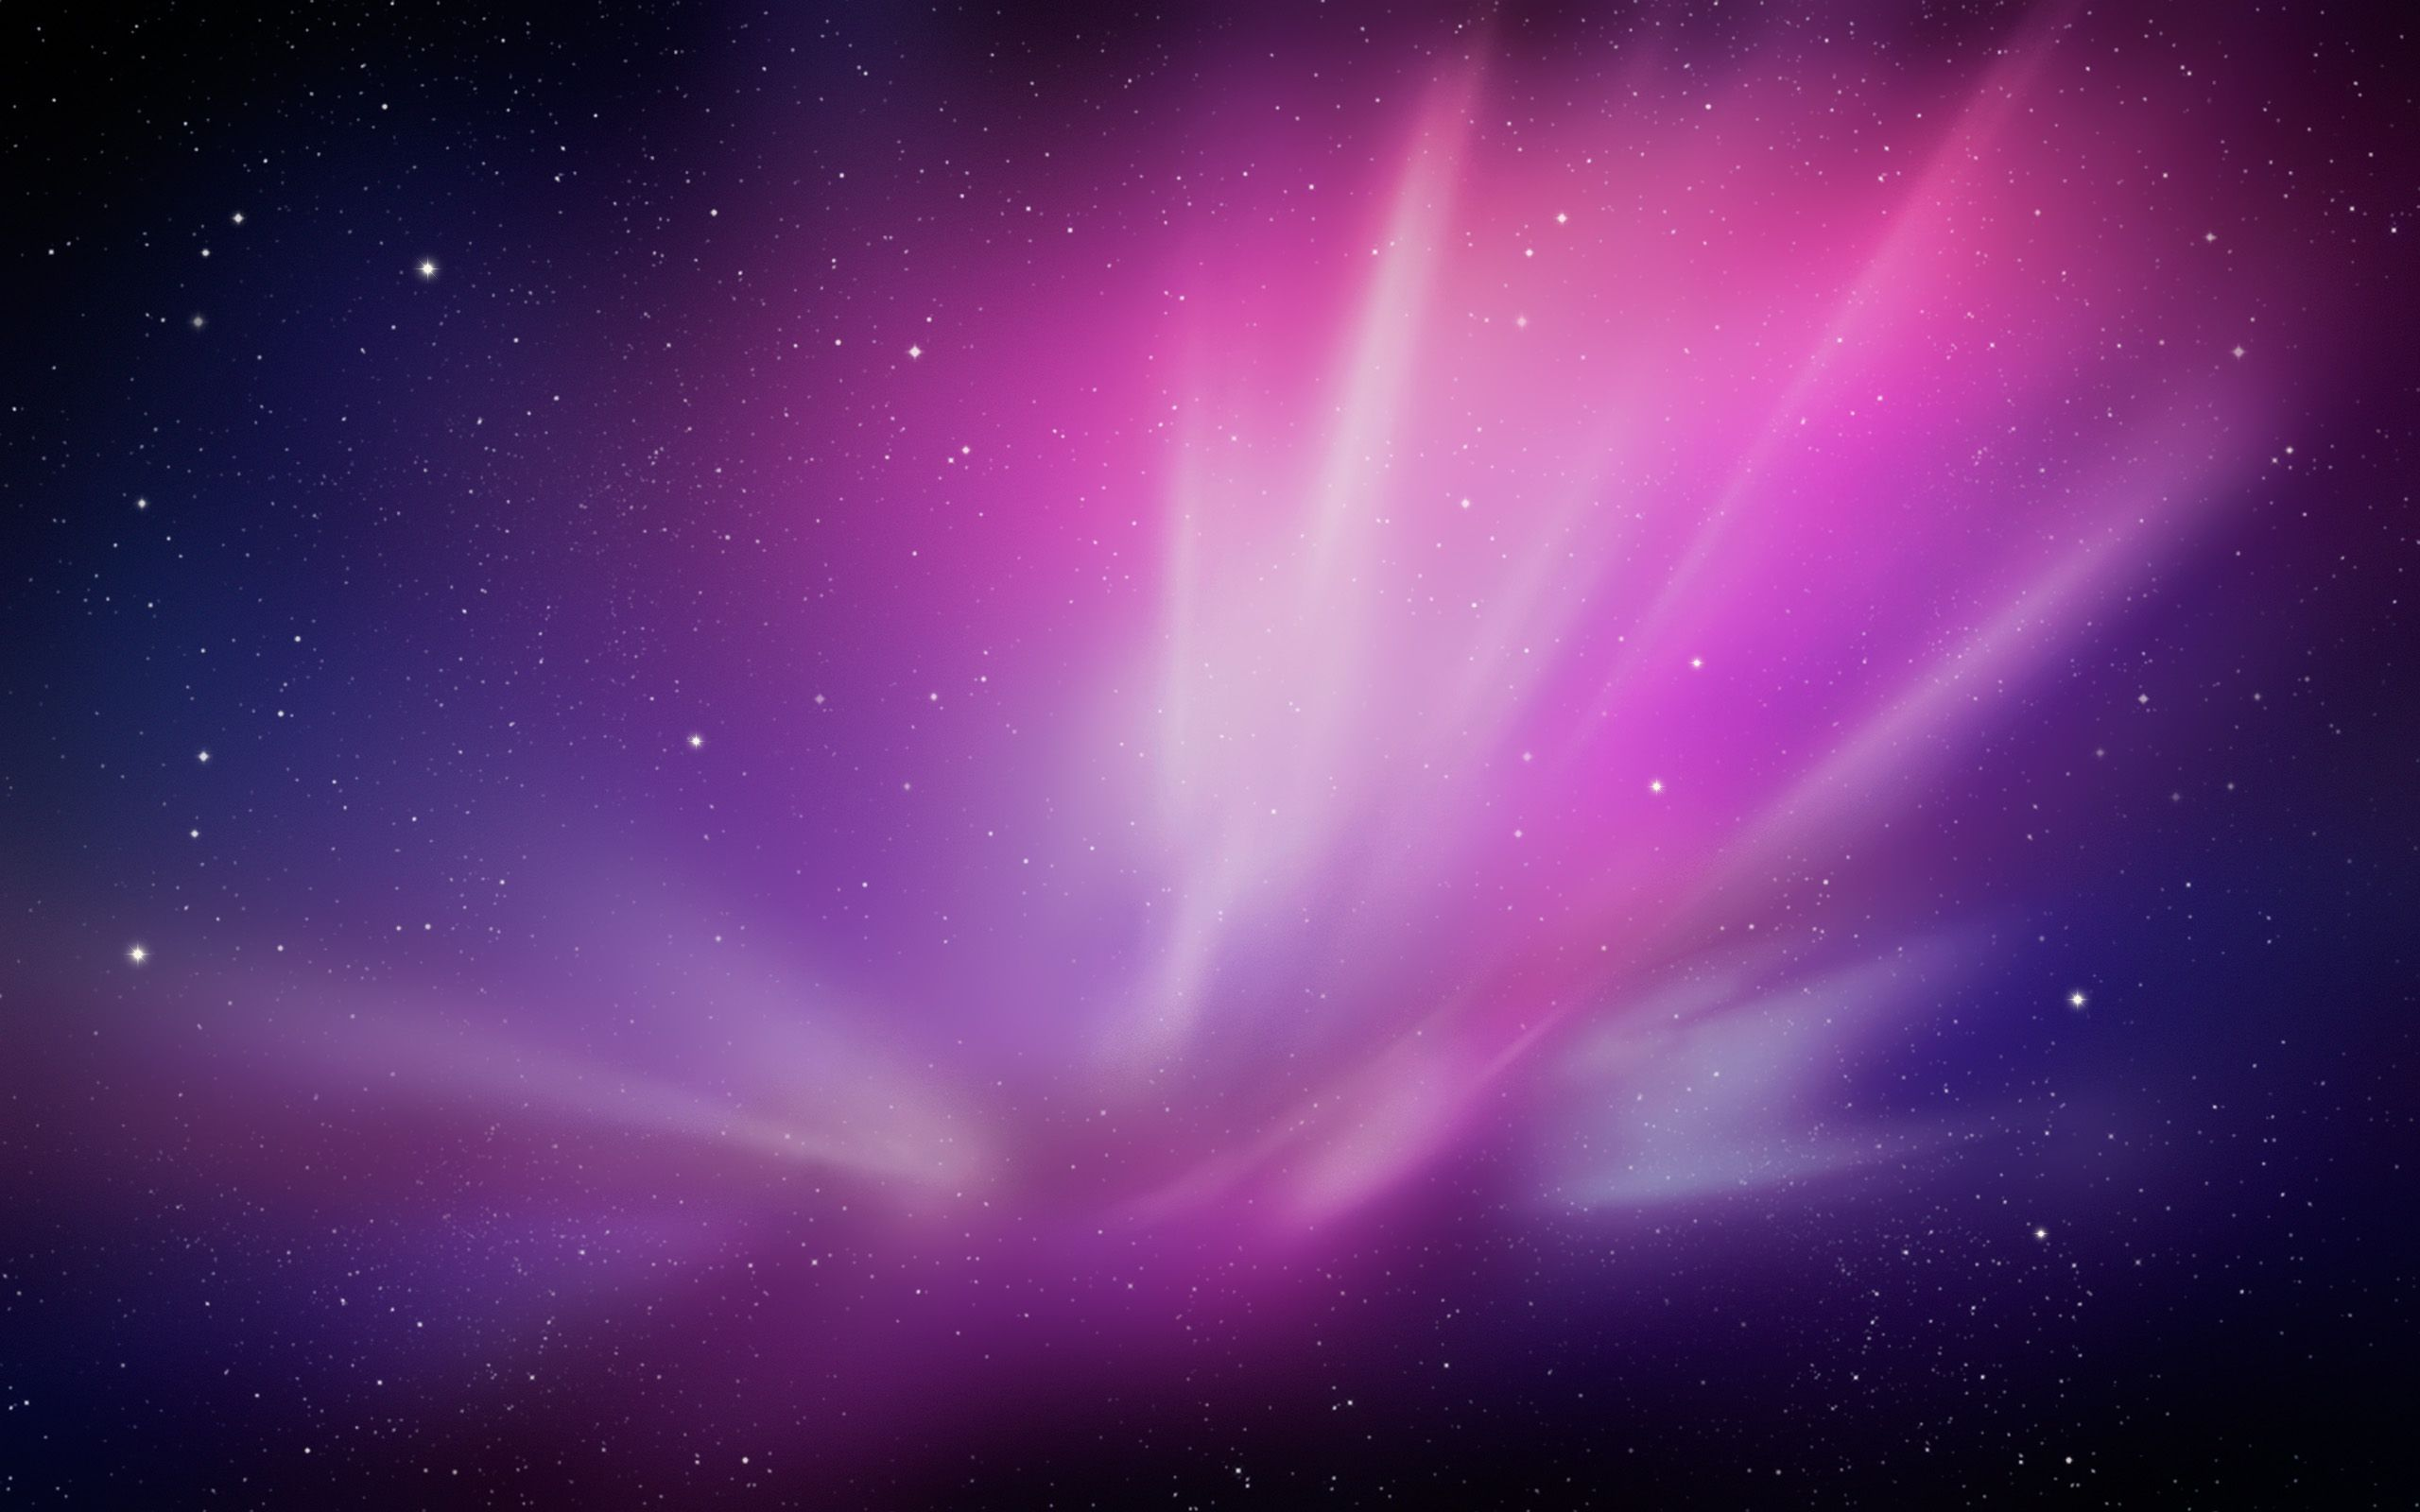 amazing apple macbook hd background awesome computer colorful